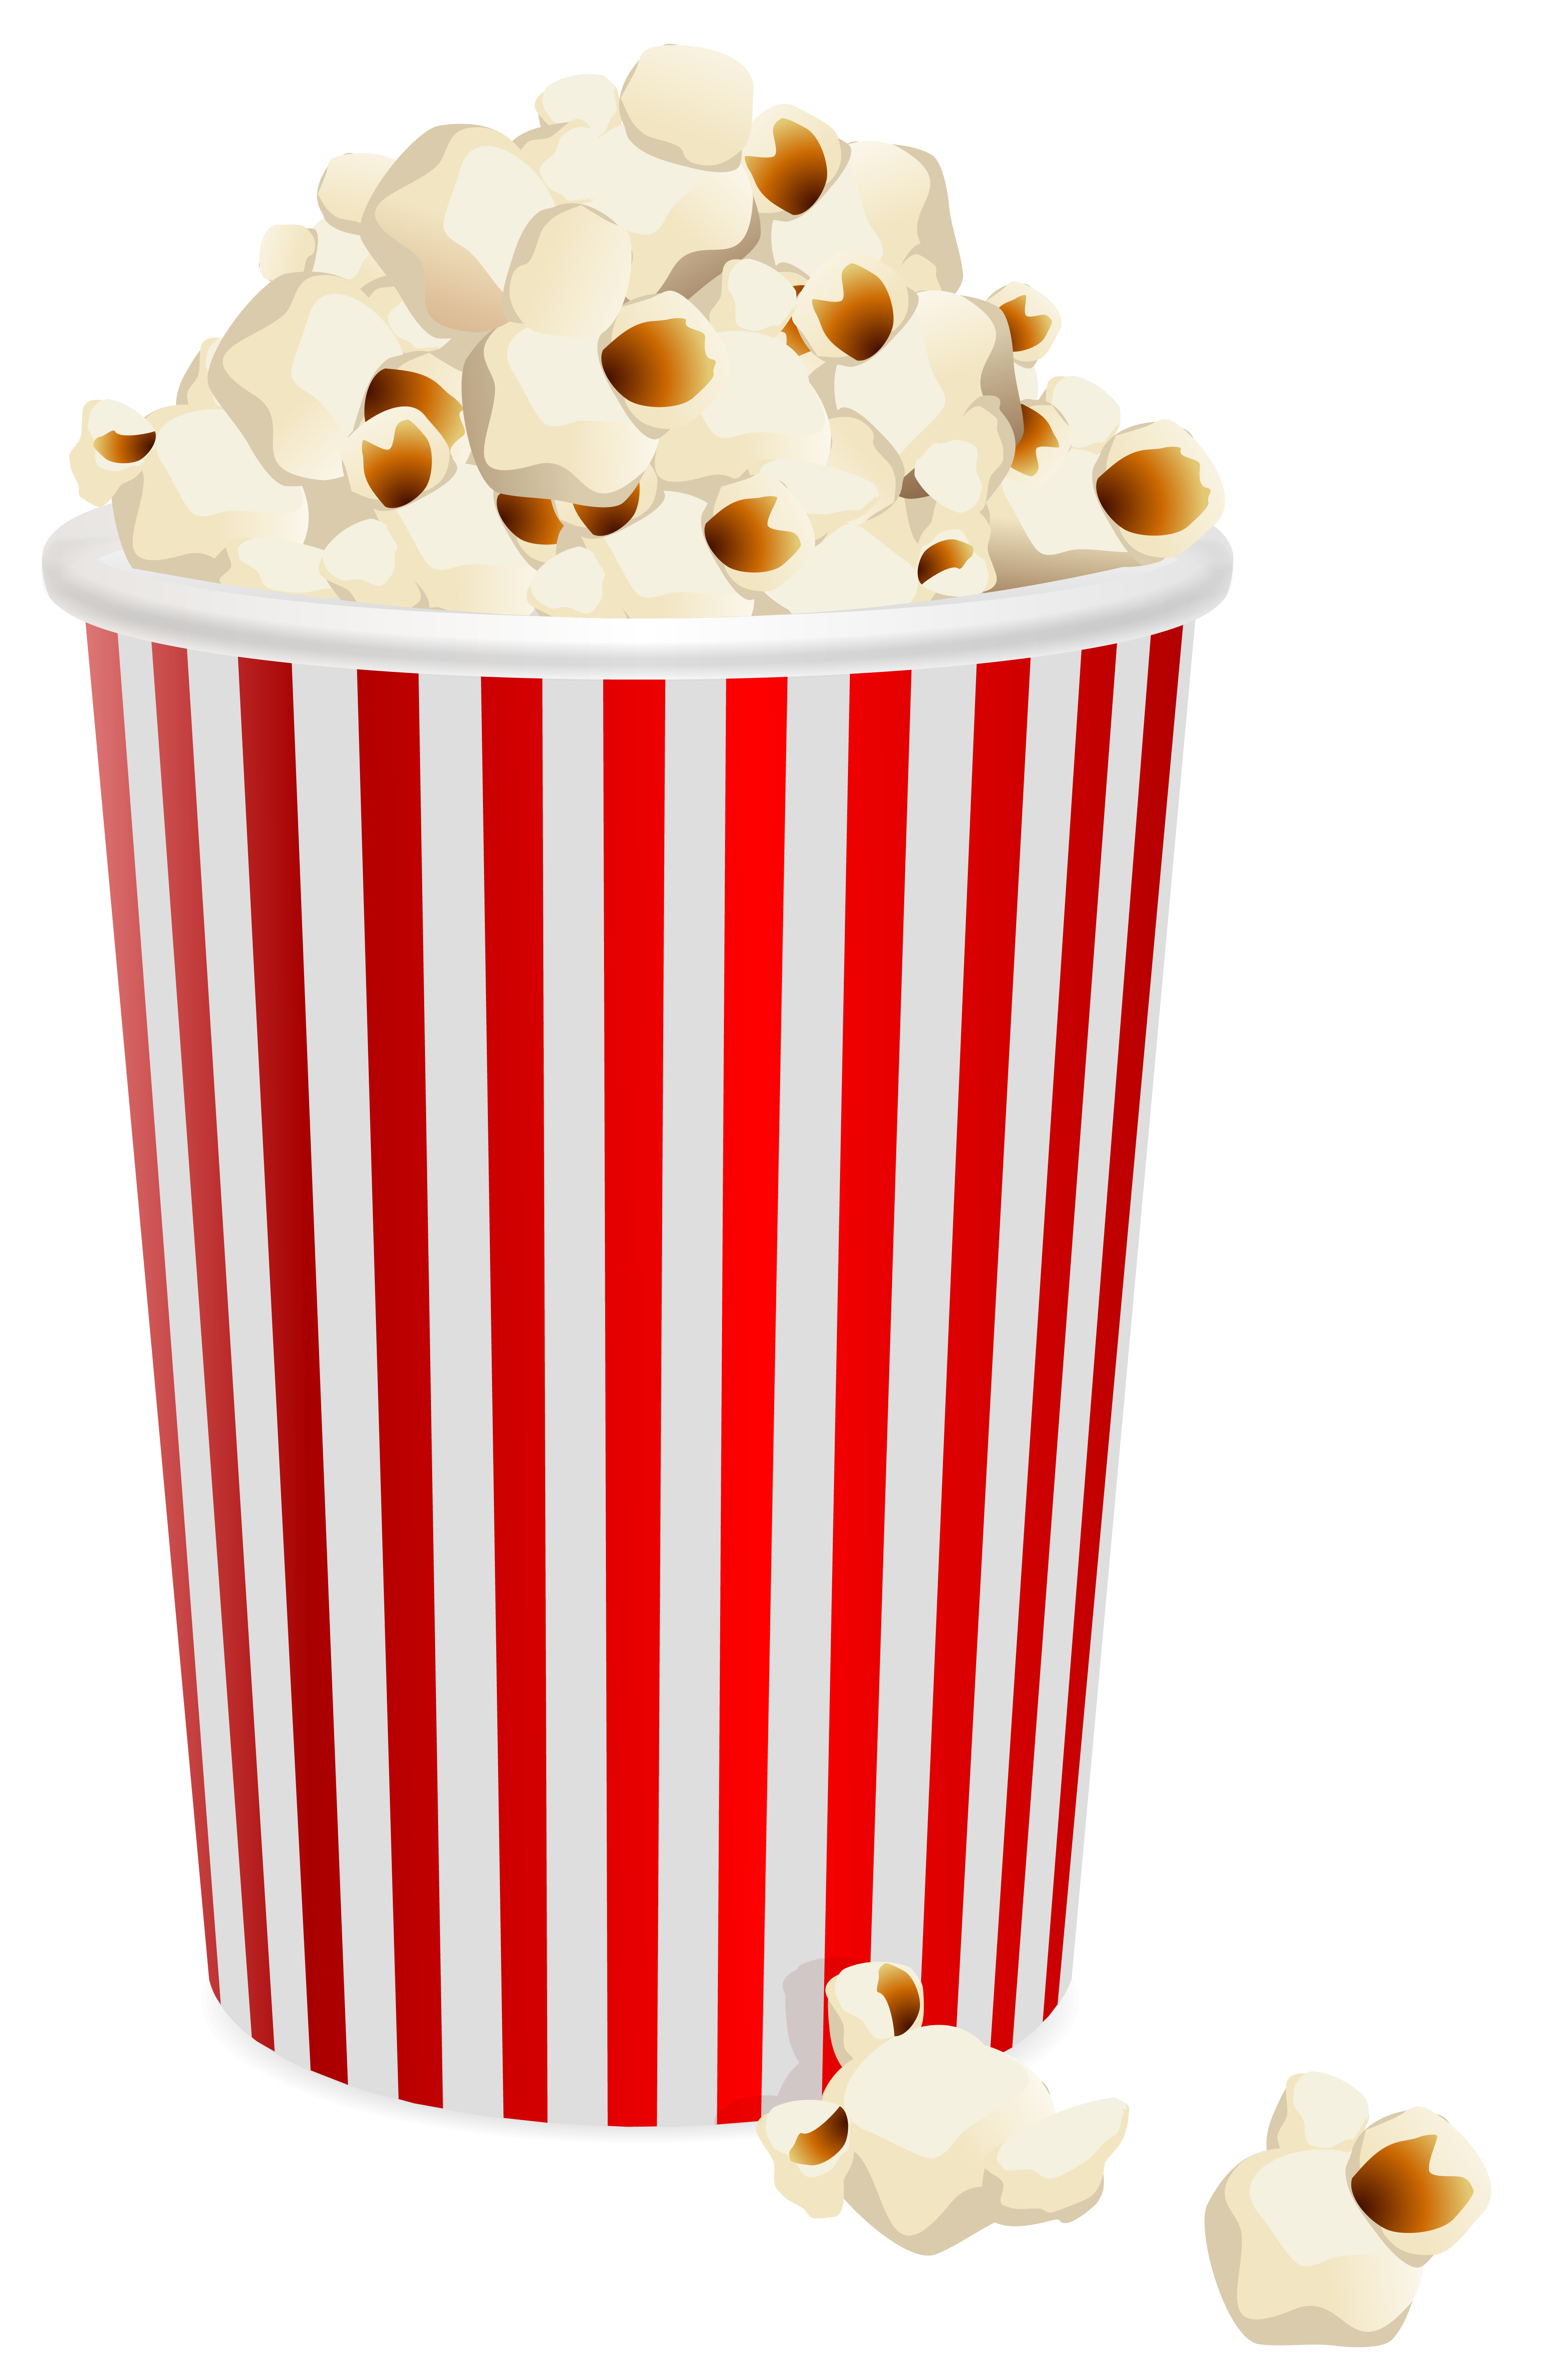 Fast food cup png. Popcorns transparent clip art